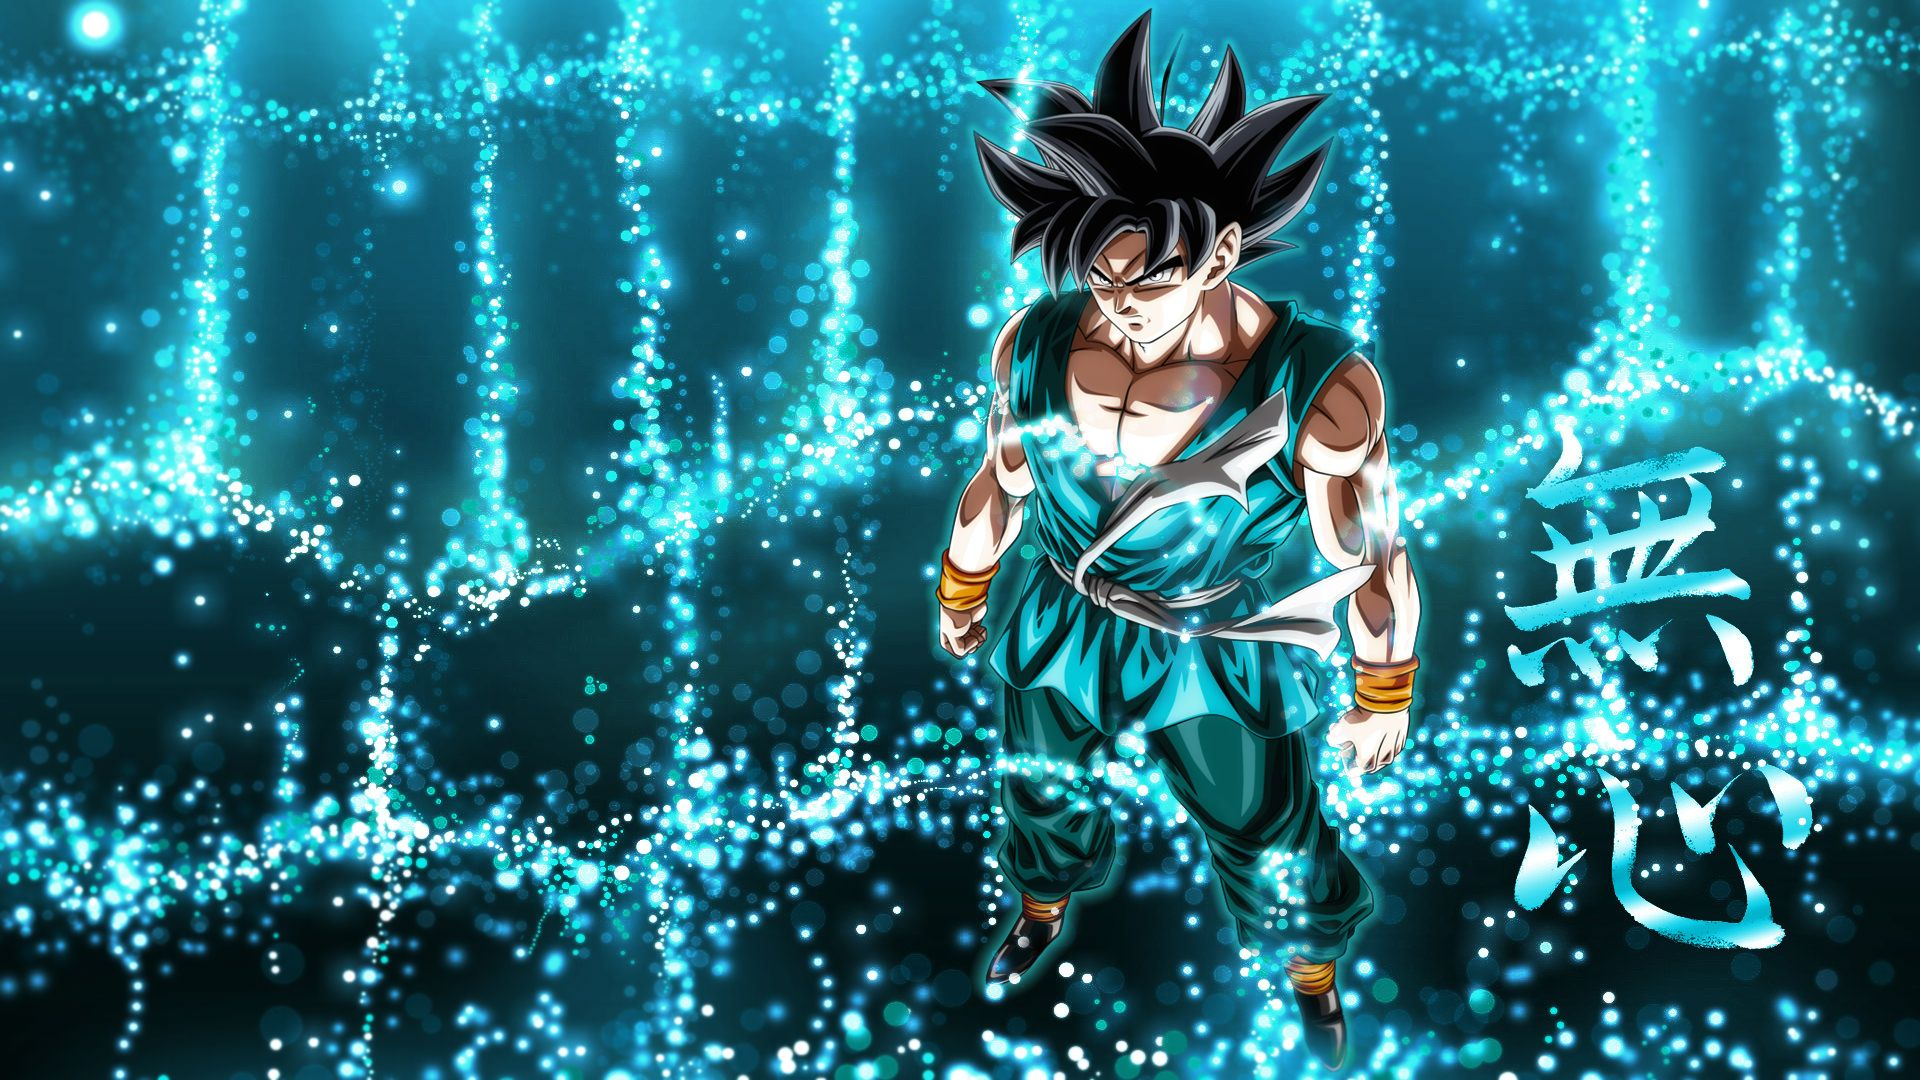 Dragonball Wallpapers Top Free Dragonball Backgrounds